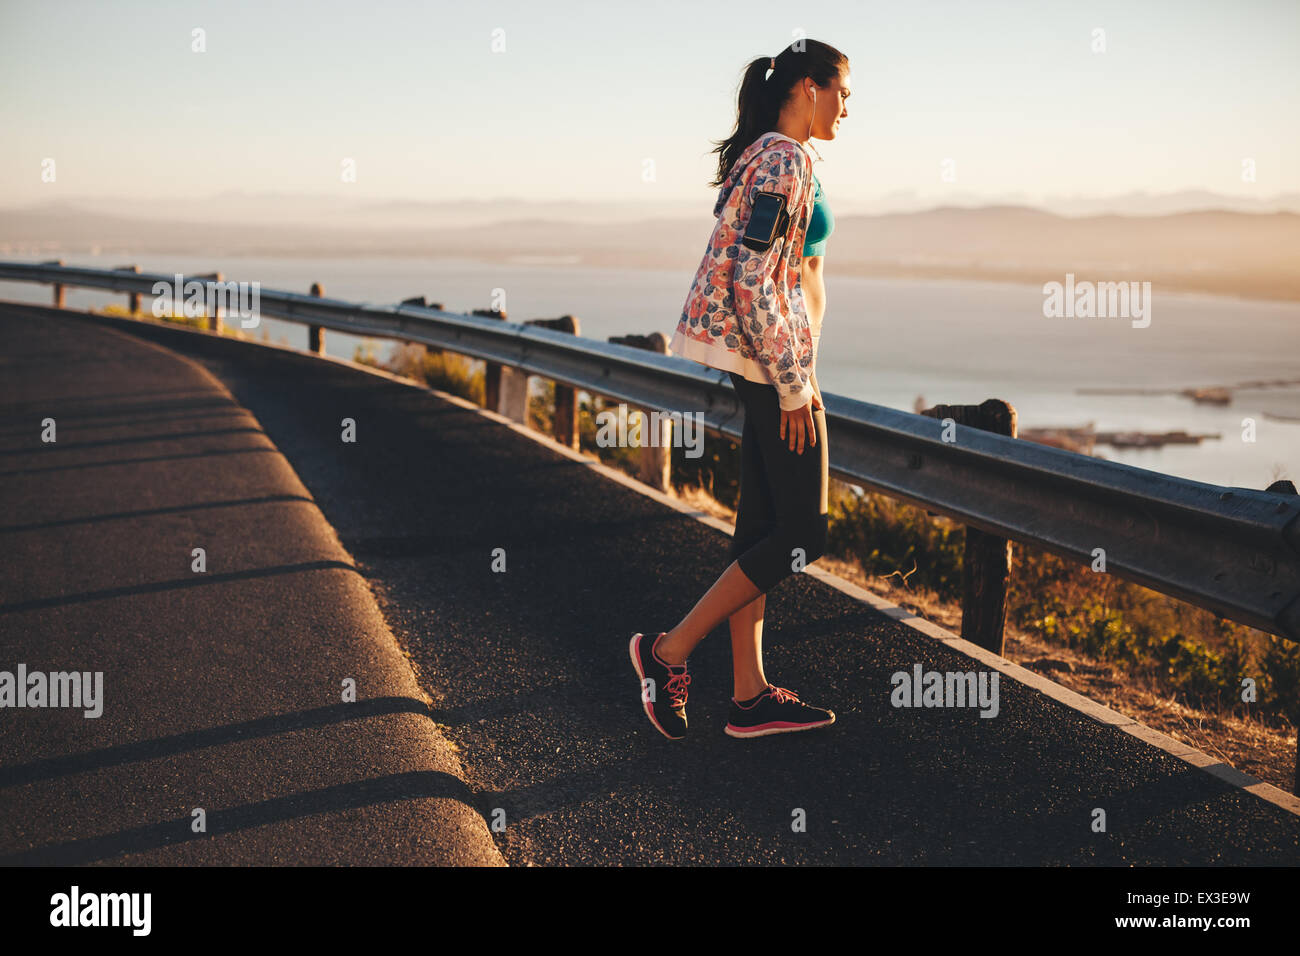 Shot of a young woman on running session standing on country road looking at a view. Fitness female athlete standing - Stock Image